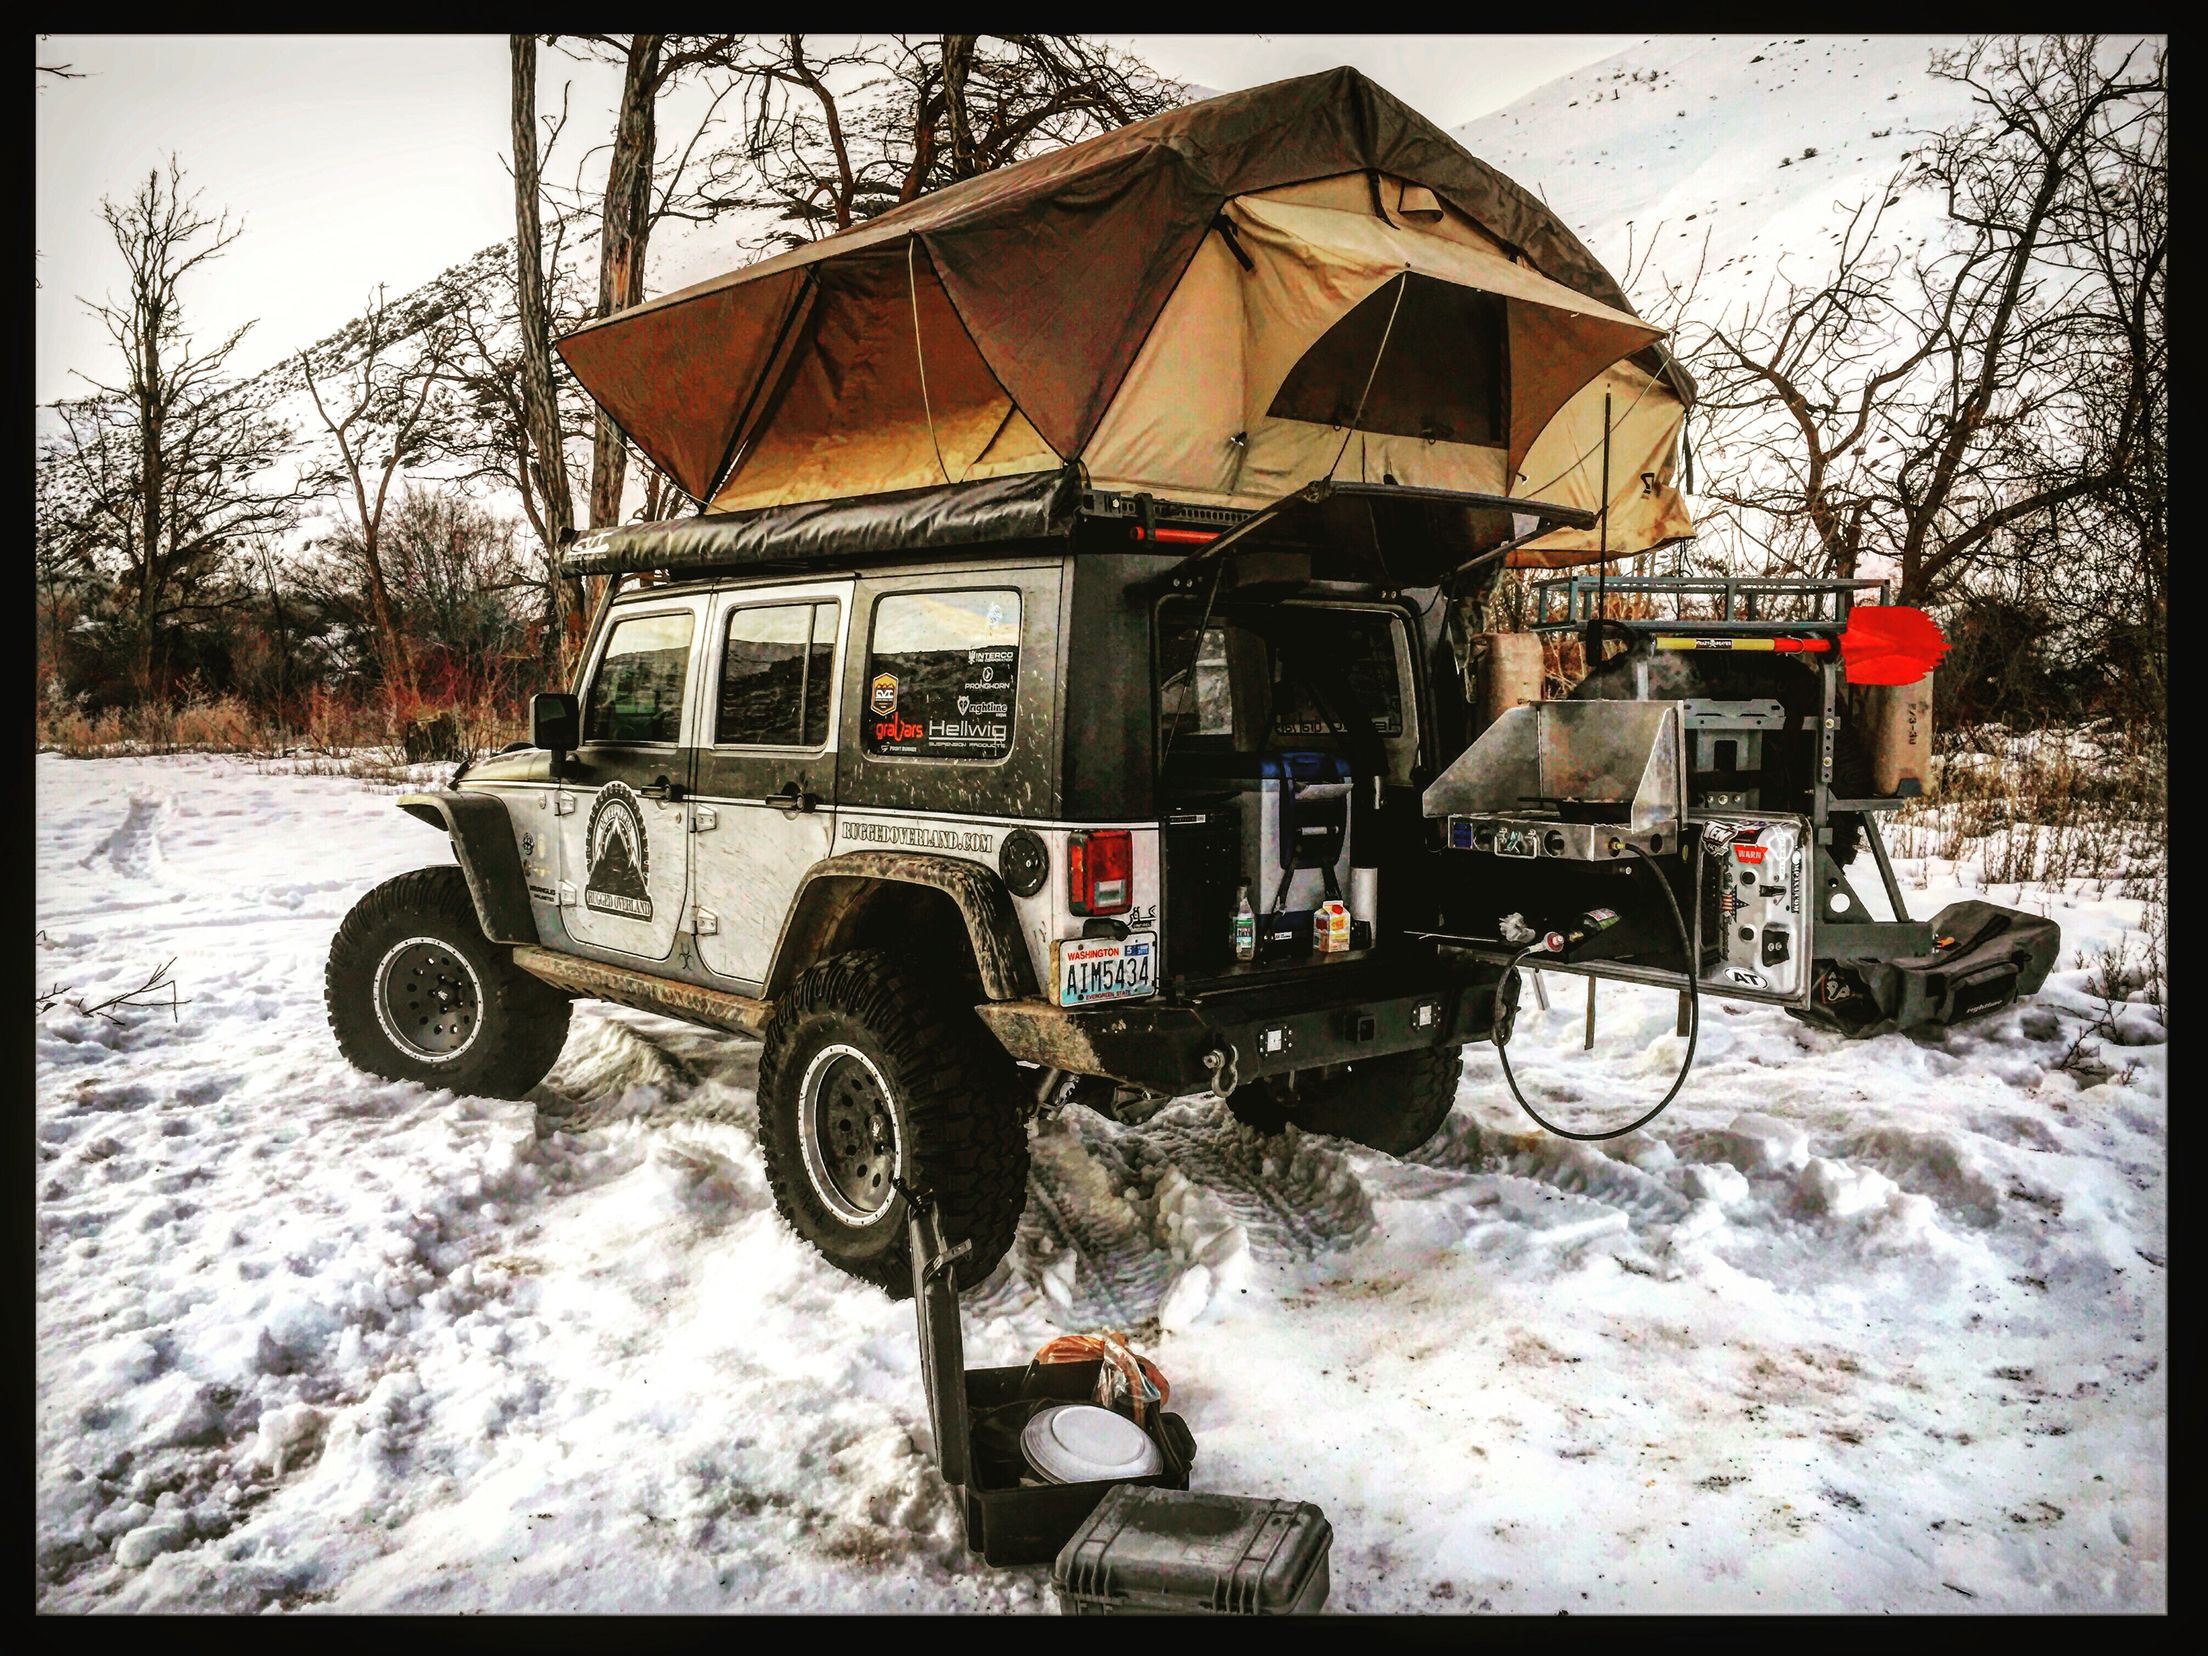 A Little Cold Weather Camping And Exploring Www Ruggedoverland Com Cold Weather Camping Overlanding Overland Vehicles